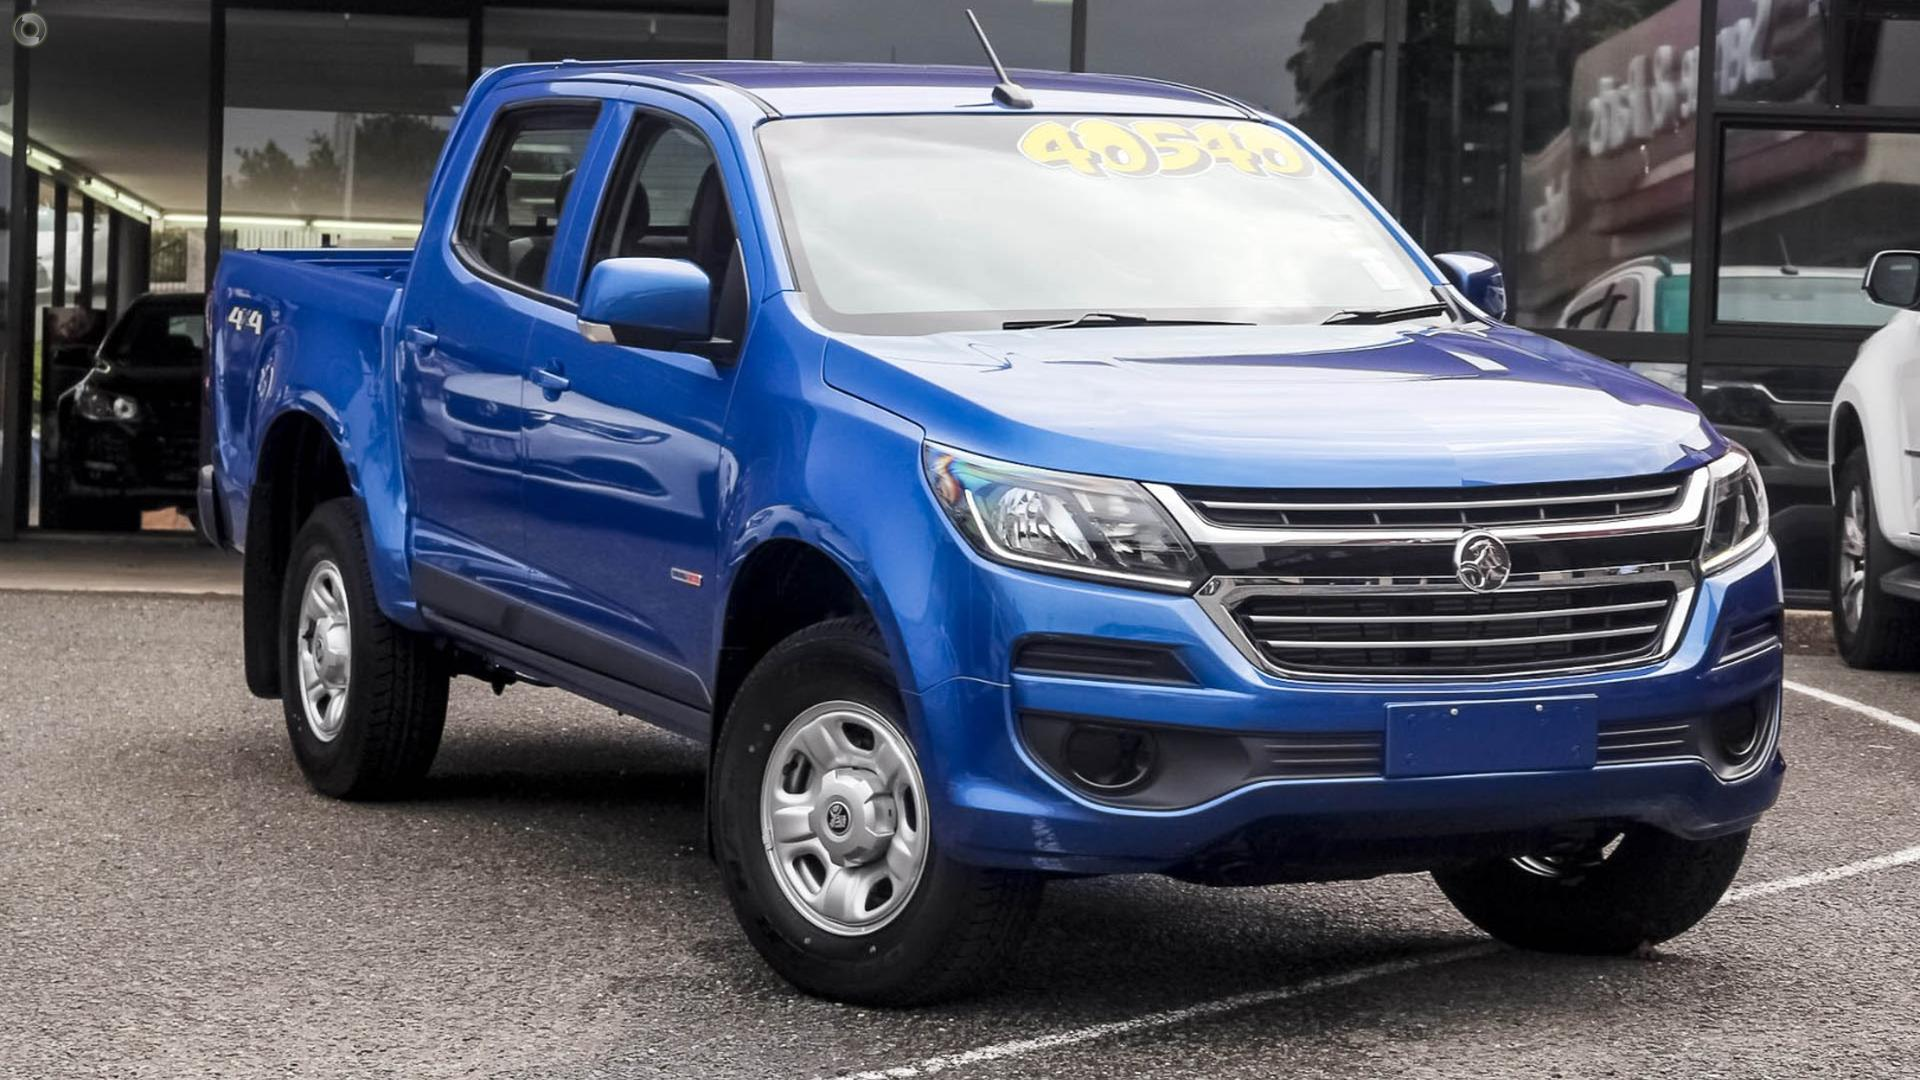 2018 Holden Colorado LS RG